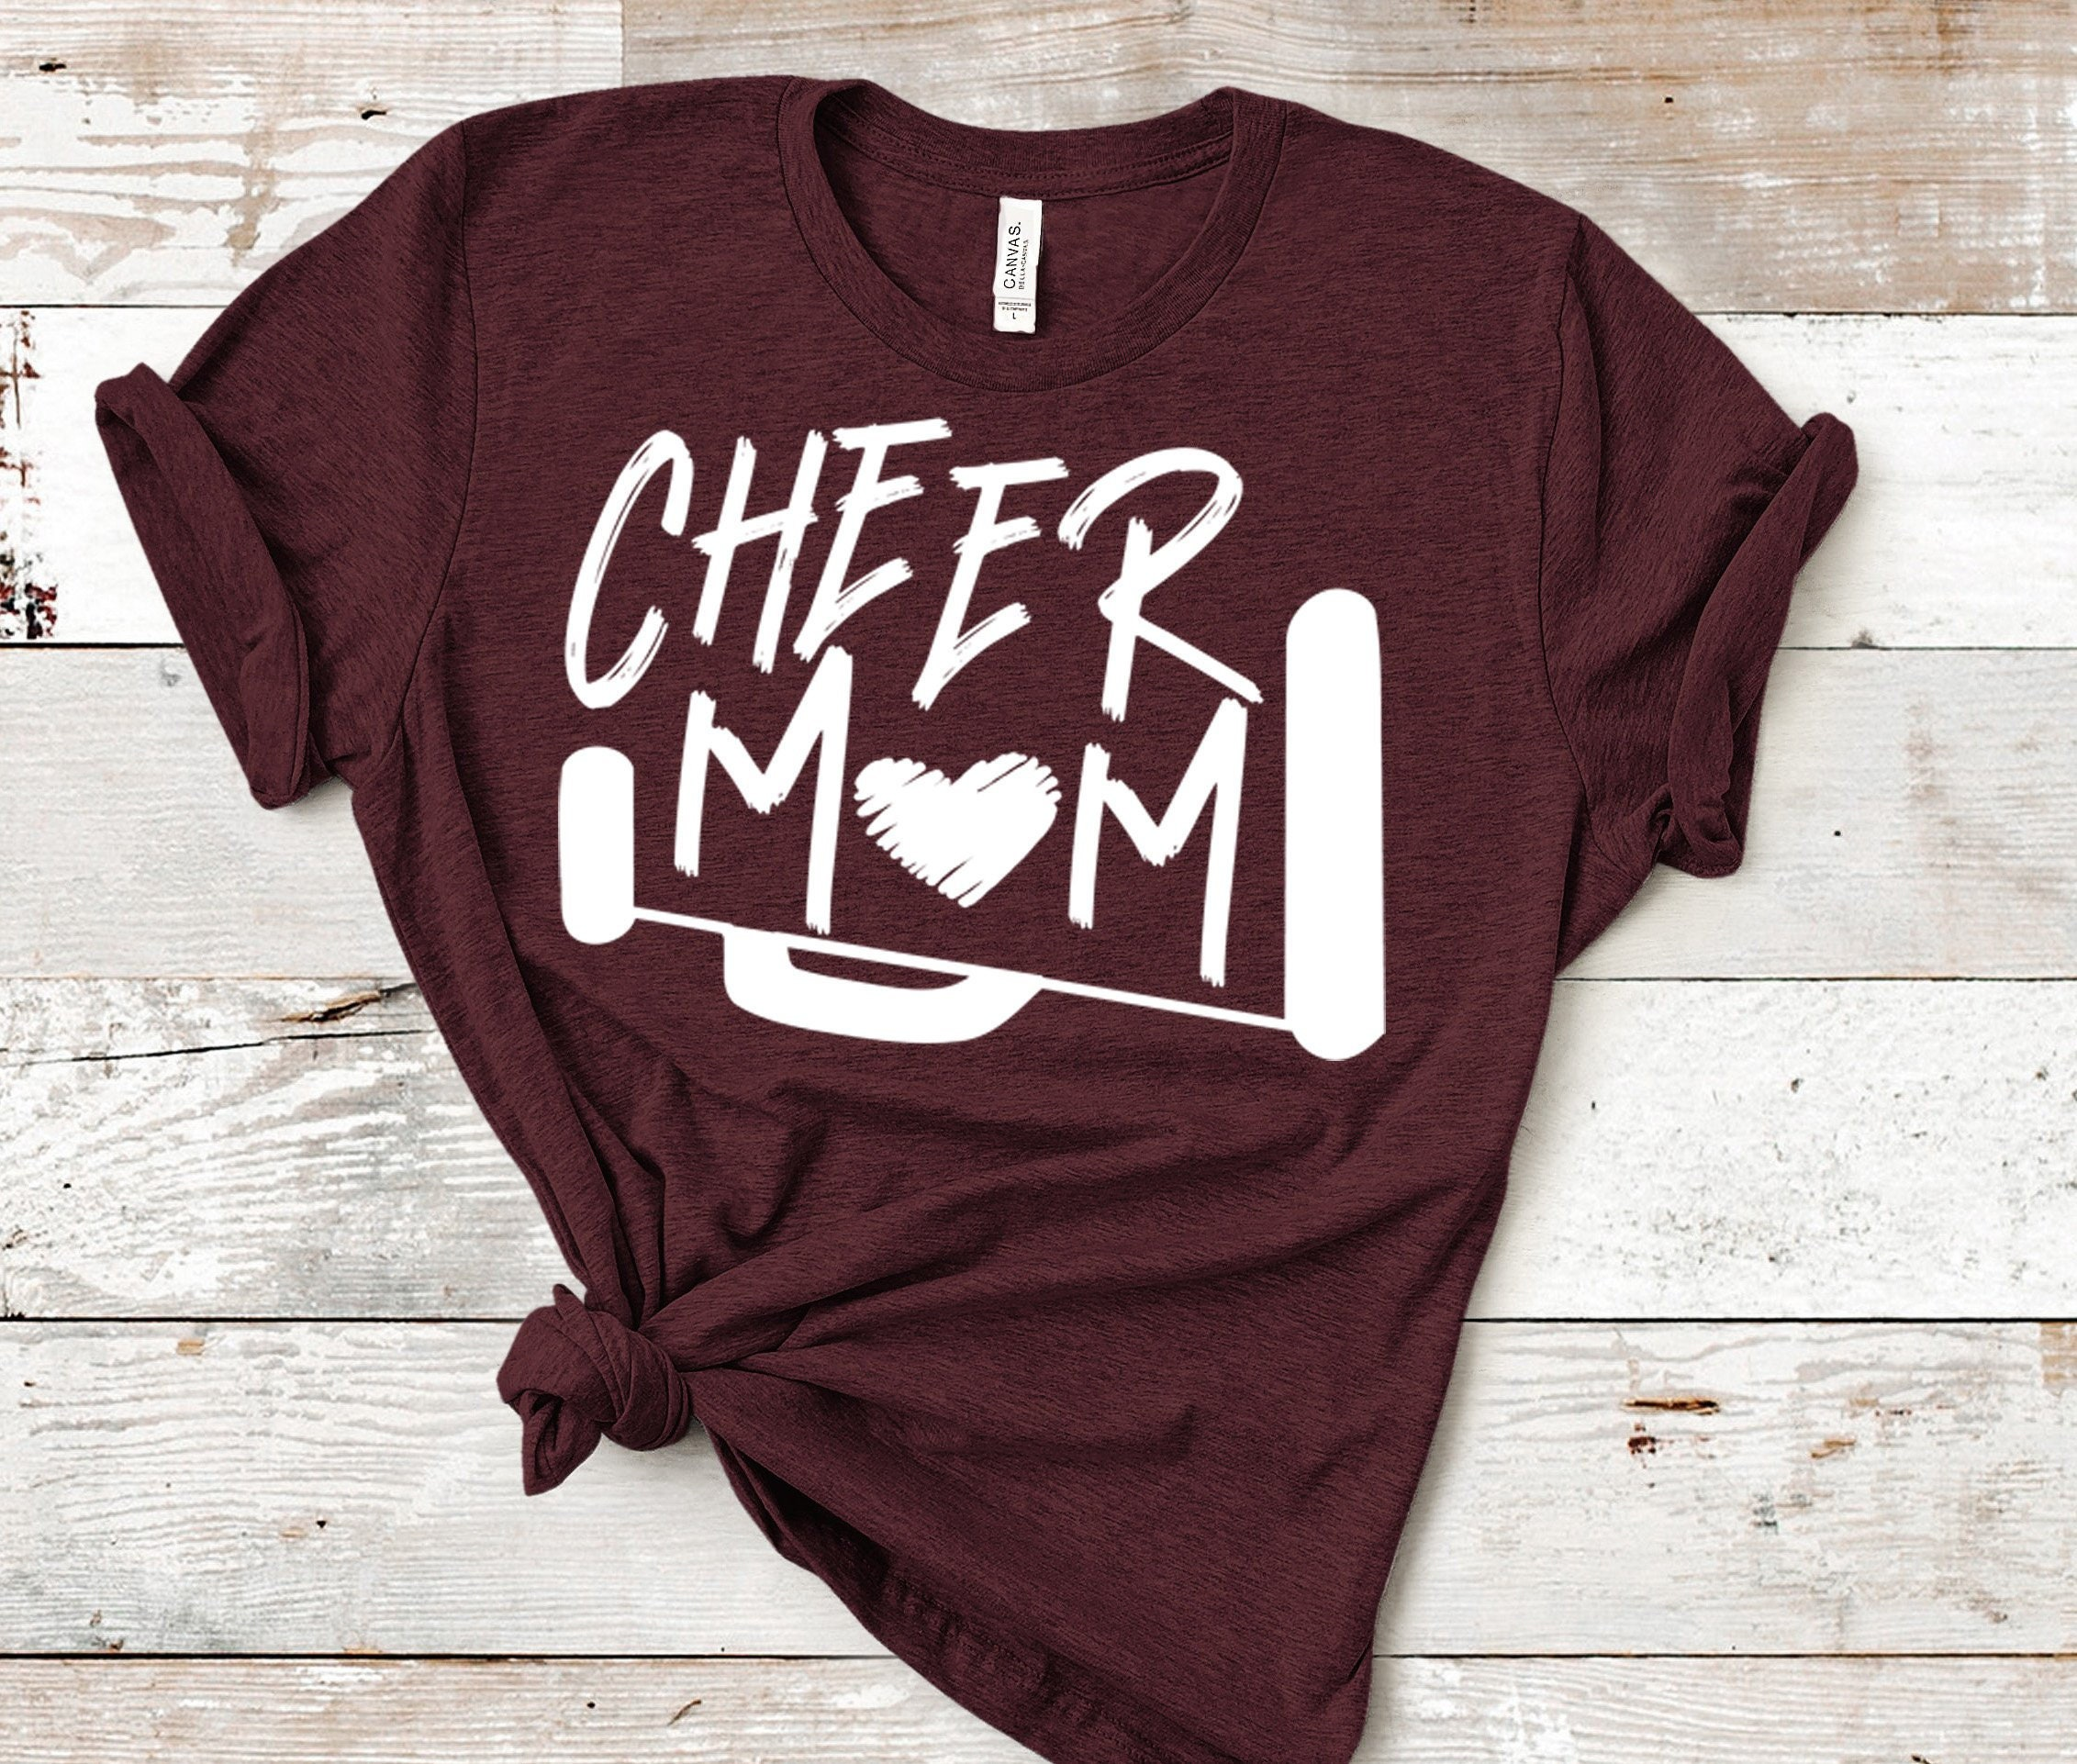 Cheer Mom Svg Cheer Svg Biggest Fan Megaphone Svg Coach Cheer Svg Design Cut File Cheerleader Clipart Eps Dxf Png Cricut Silhouette